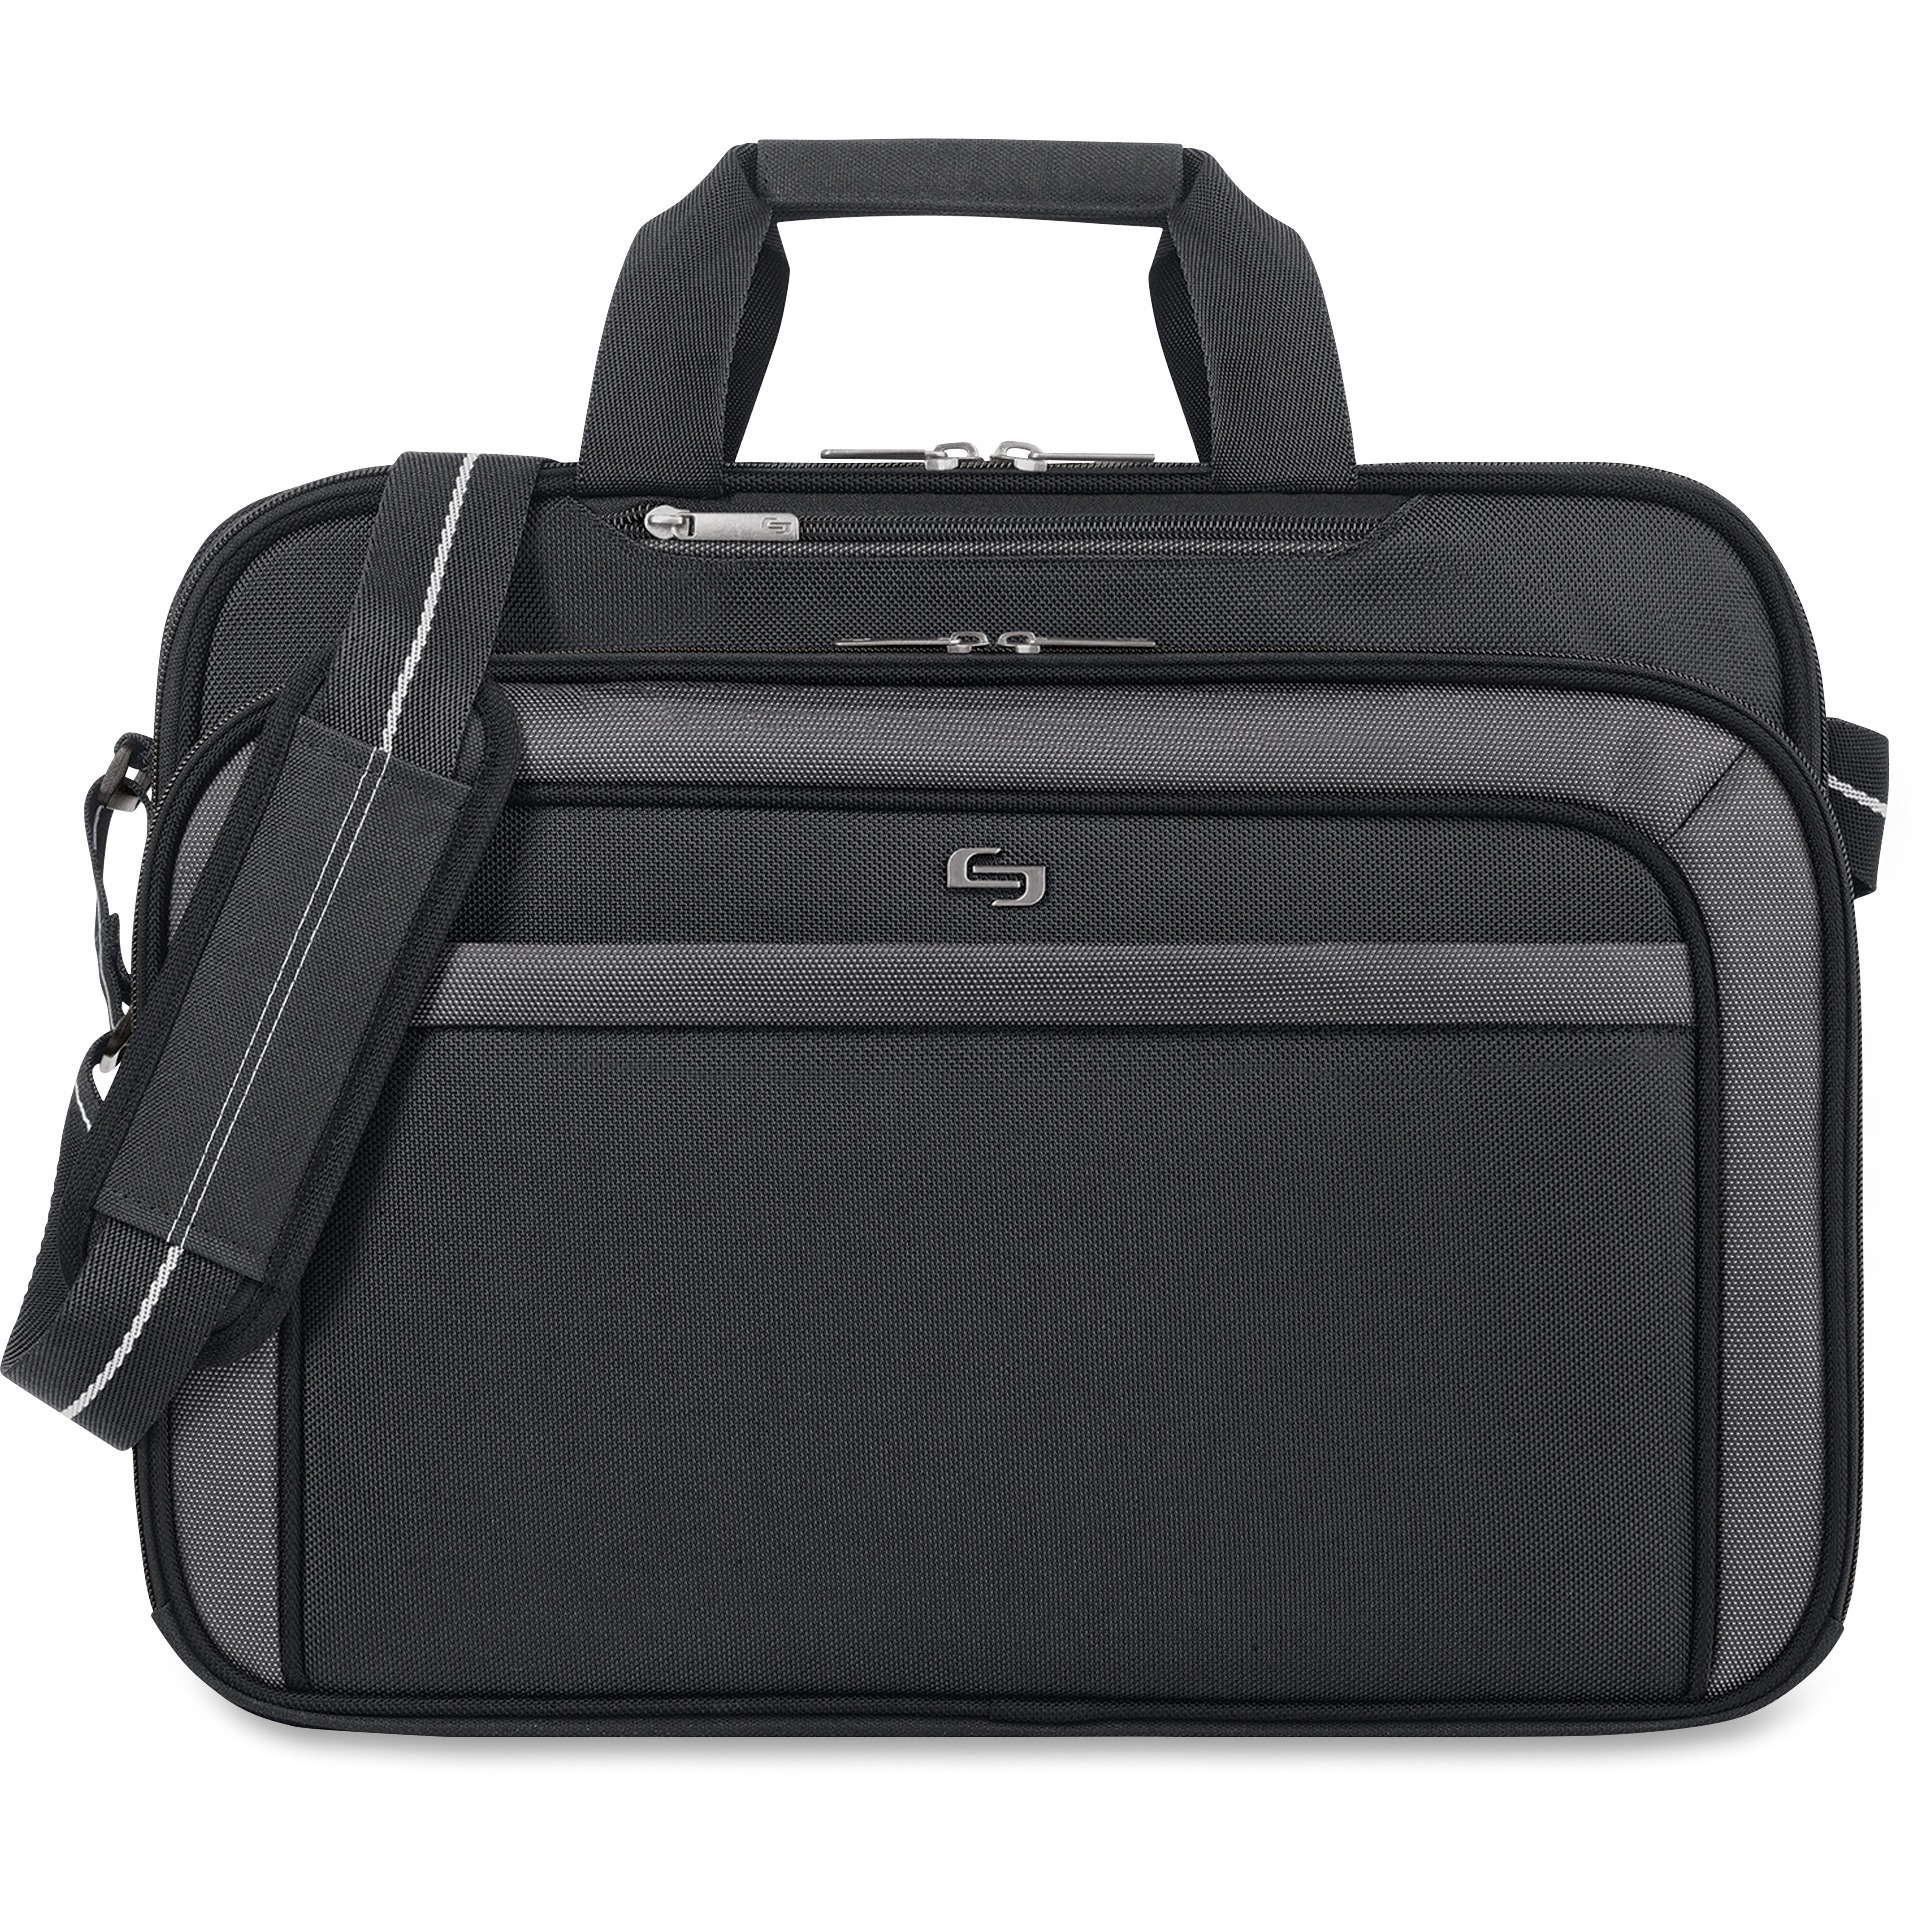 Solo, USLCLA3144, US Luggage CheckFast Clamshell Design Laptop Case, 1, Black by Solo